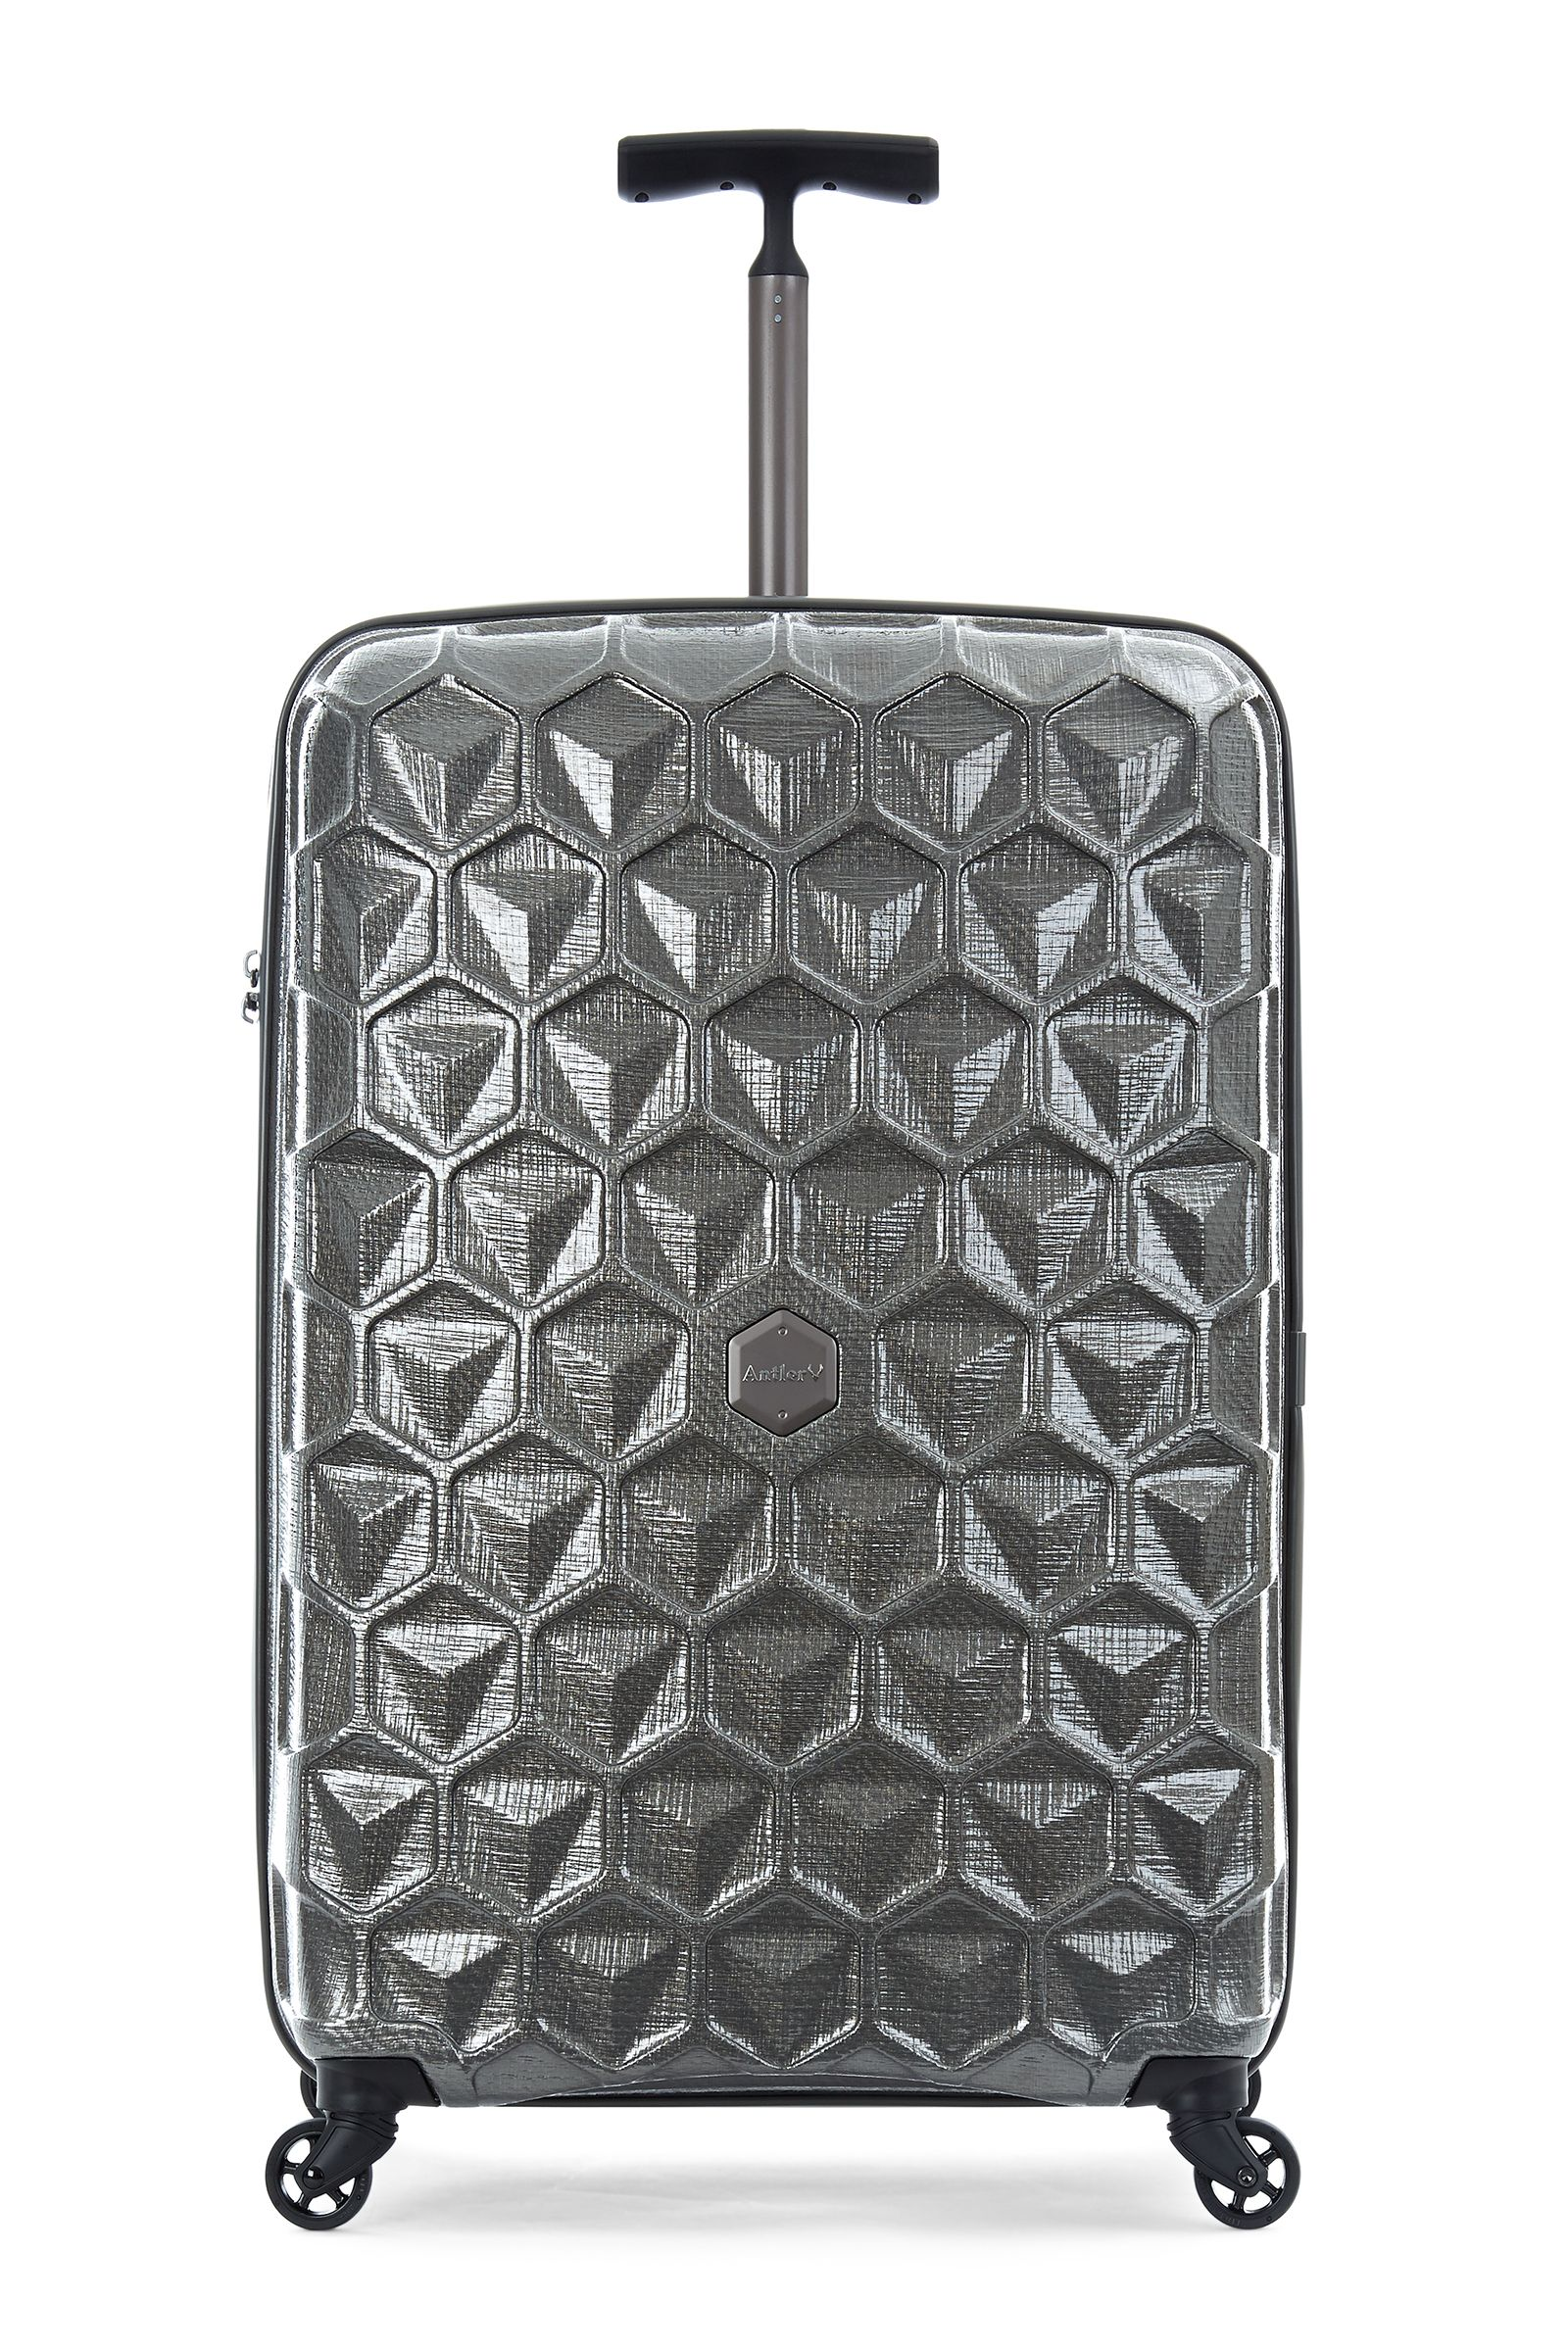 Antler Atom charcoal 4 wheel hard large suitcase Charcoal